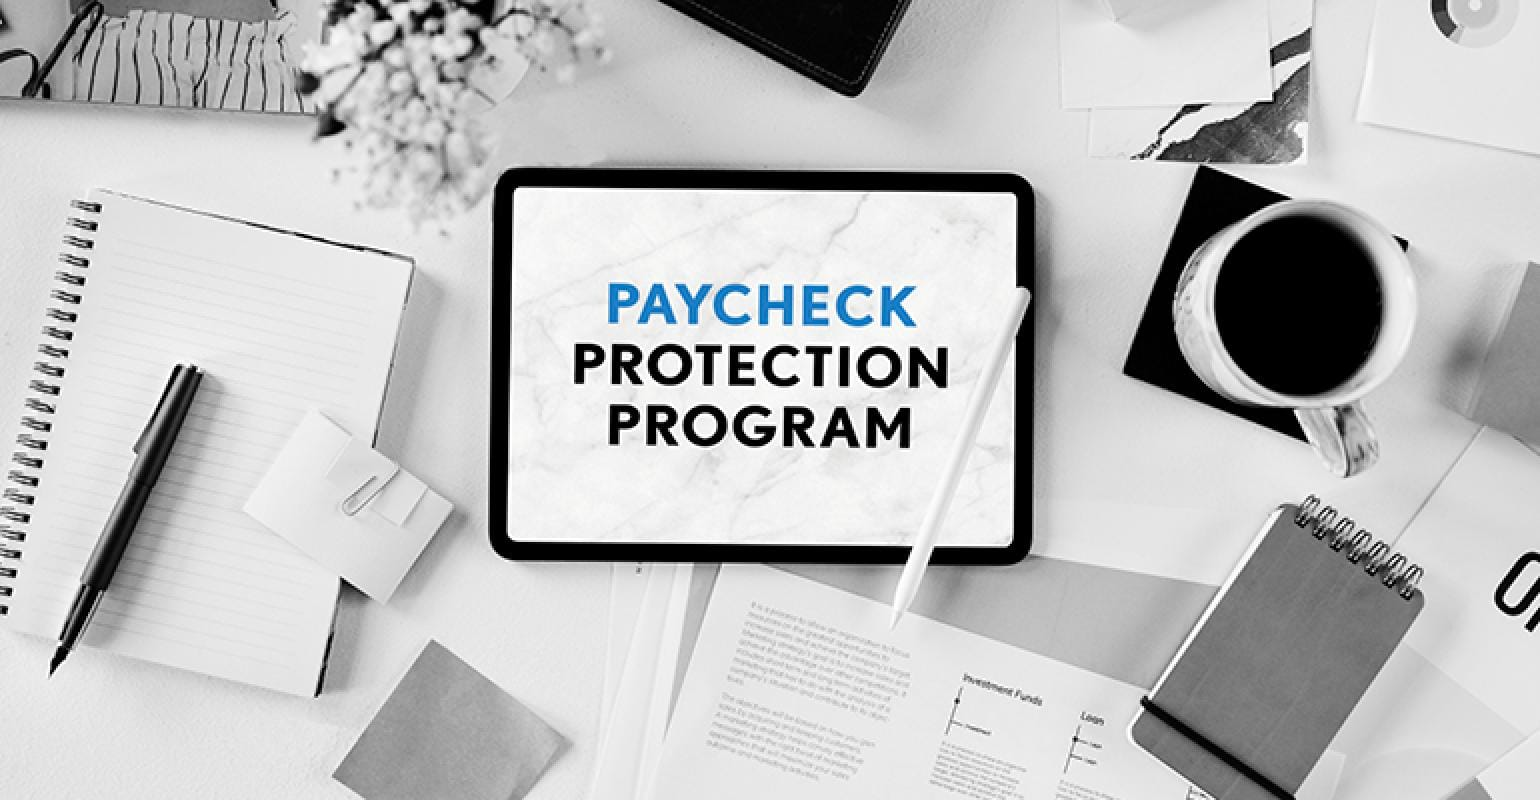 Self-Employed: Unemployment Insurance Or Paycheck Protection Program